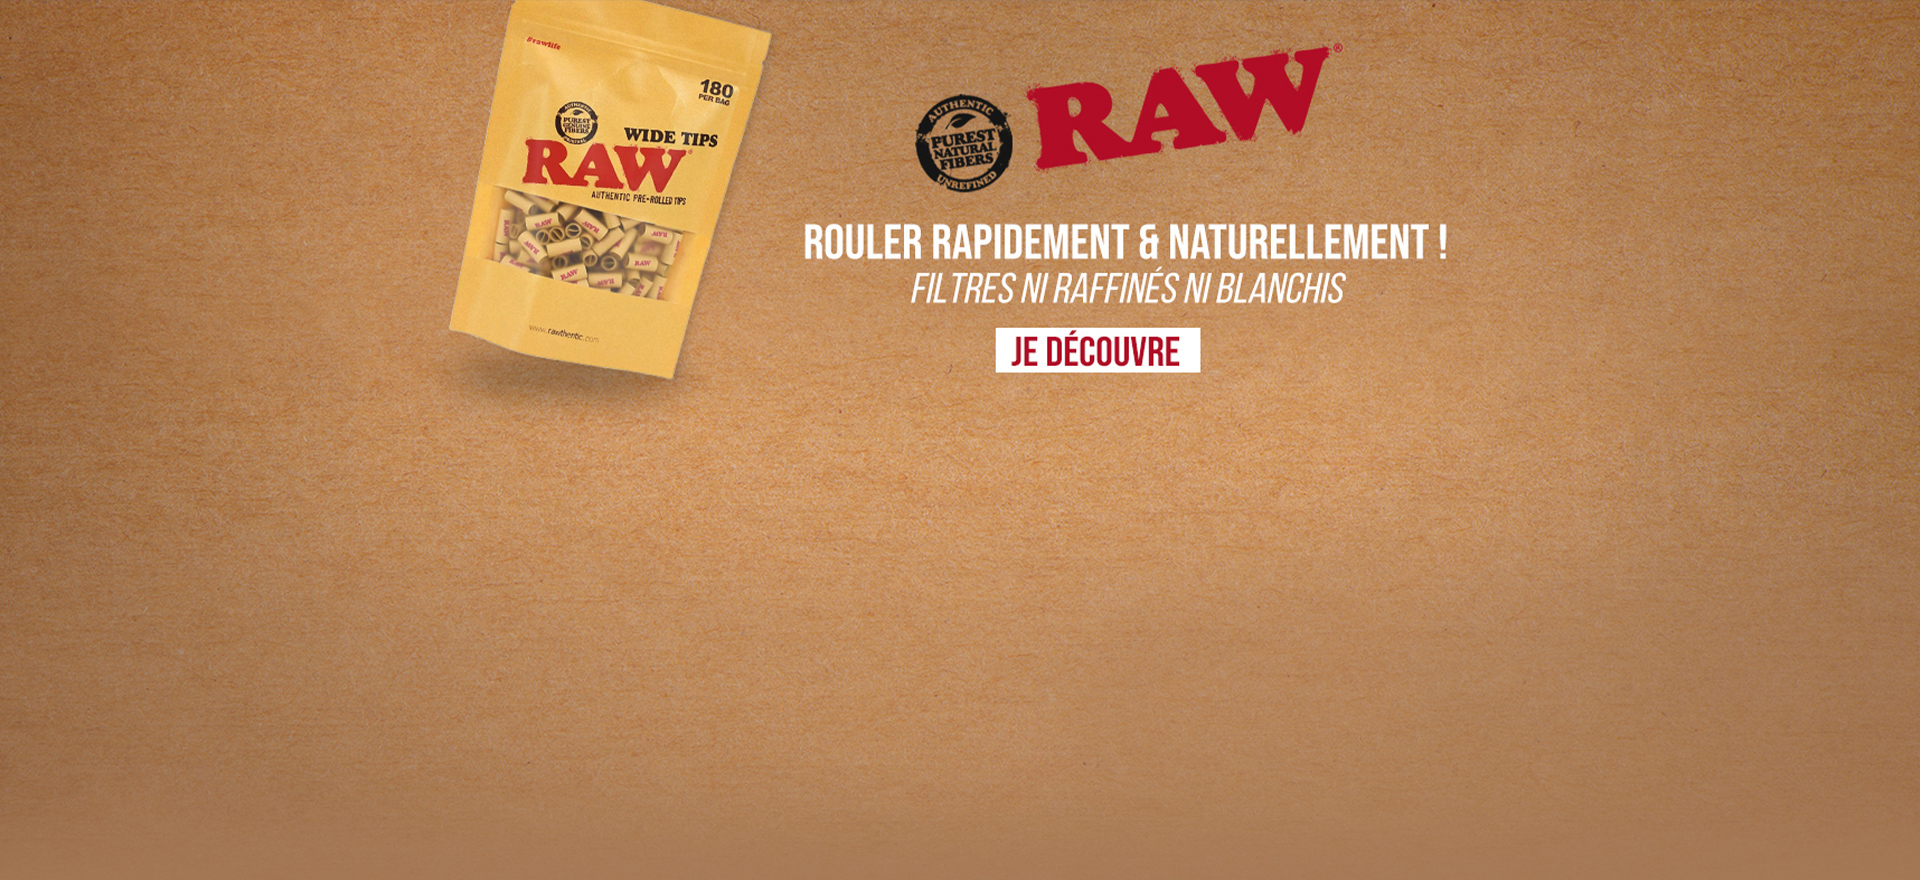 FILTRES RAW PRE-ROULES WIDE